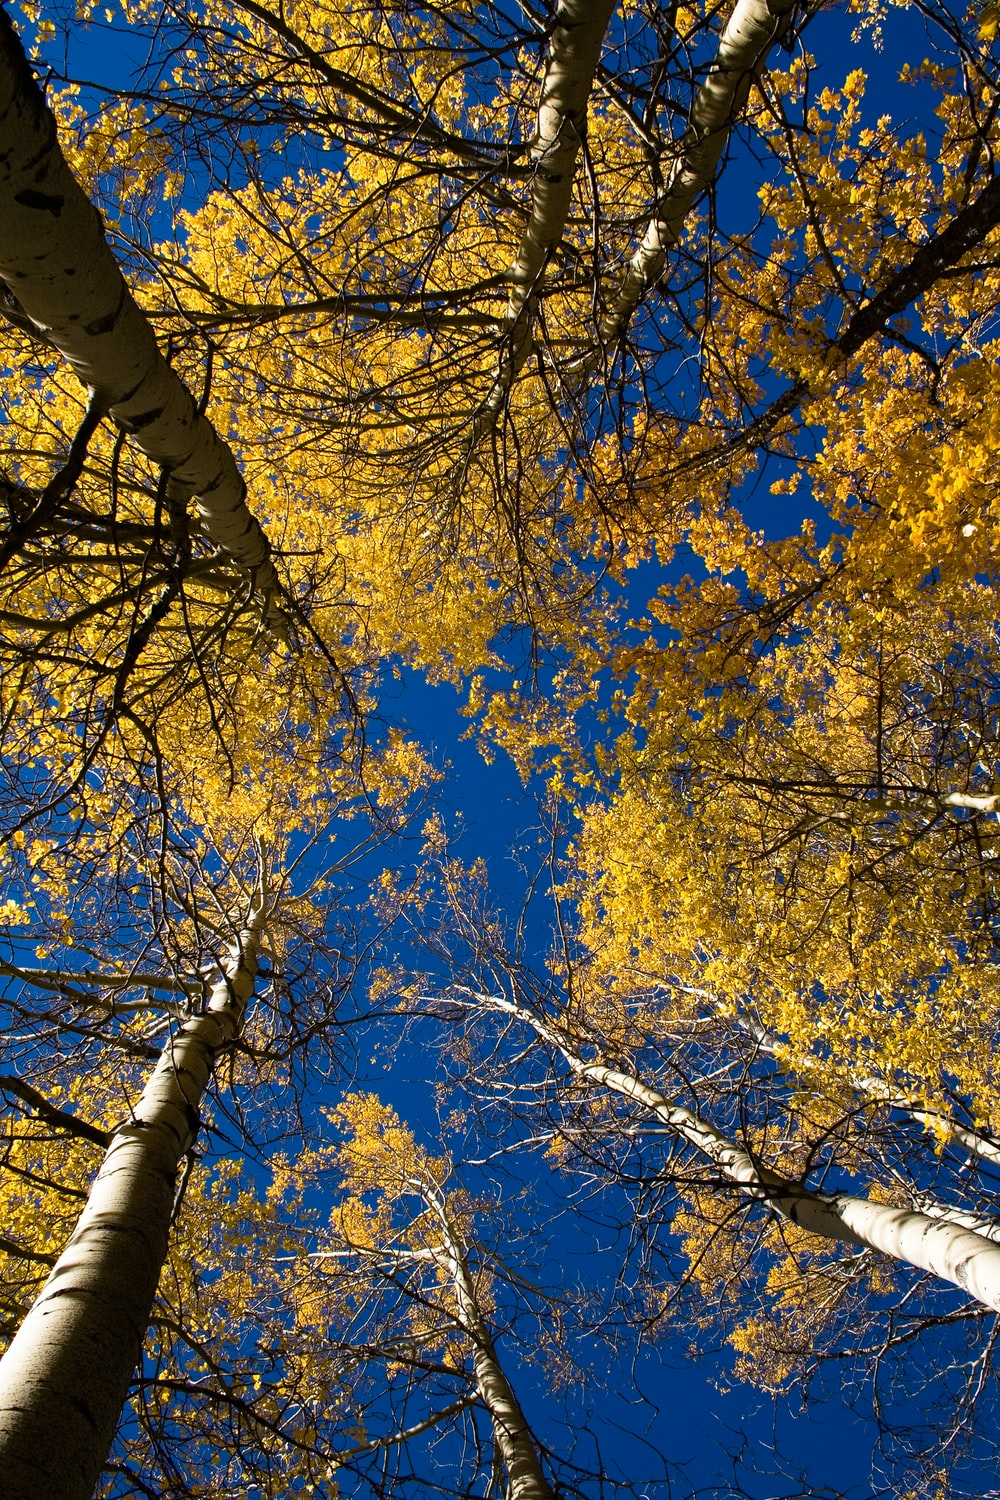 low angle photography of yellow leaf trees under blue sky during daytime